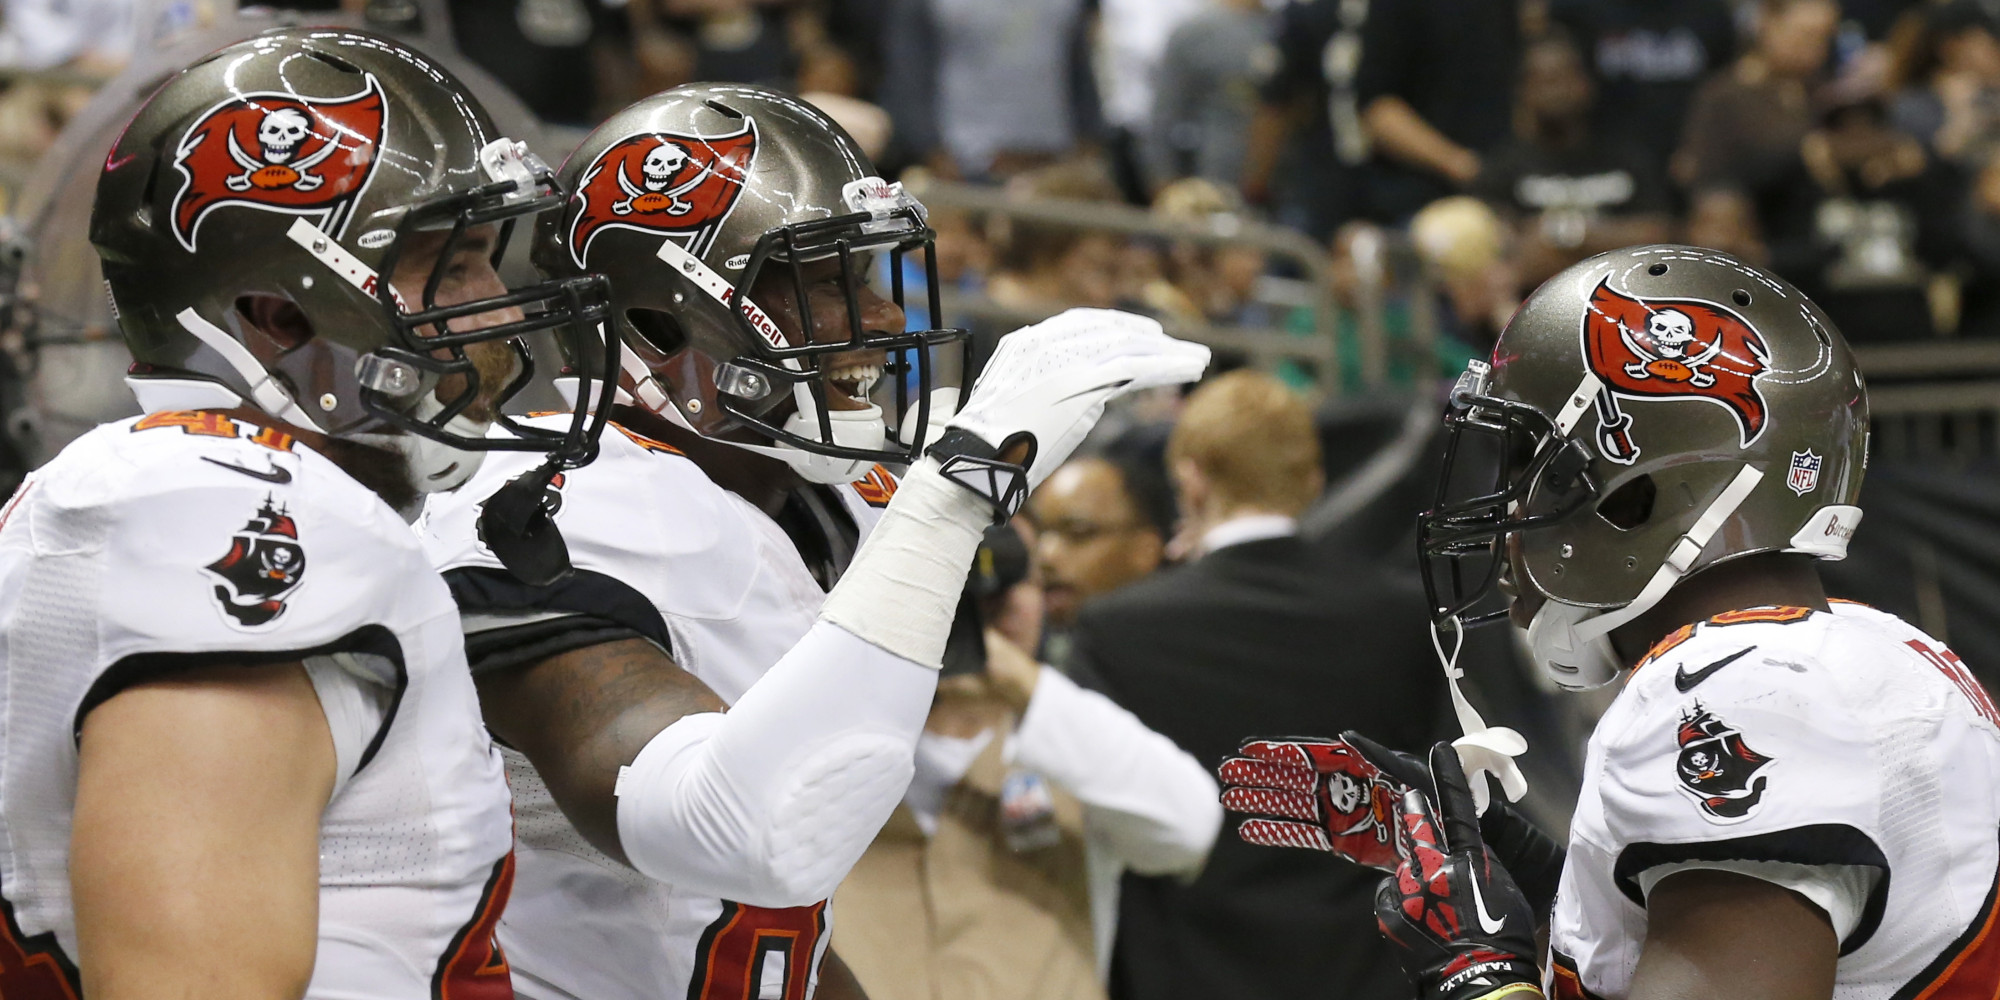 ... Buccaneers New Uniforms Tampa Bay Unveils New Jersey Design HuffPost ... a6a240e0e